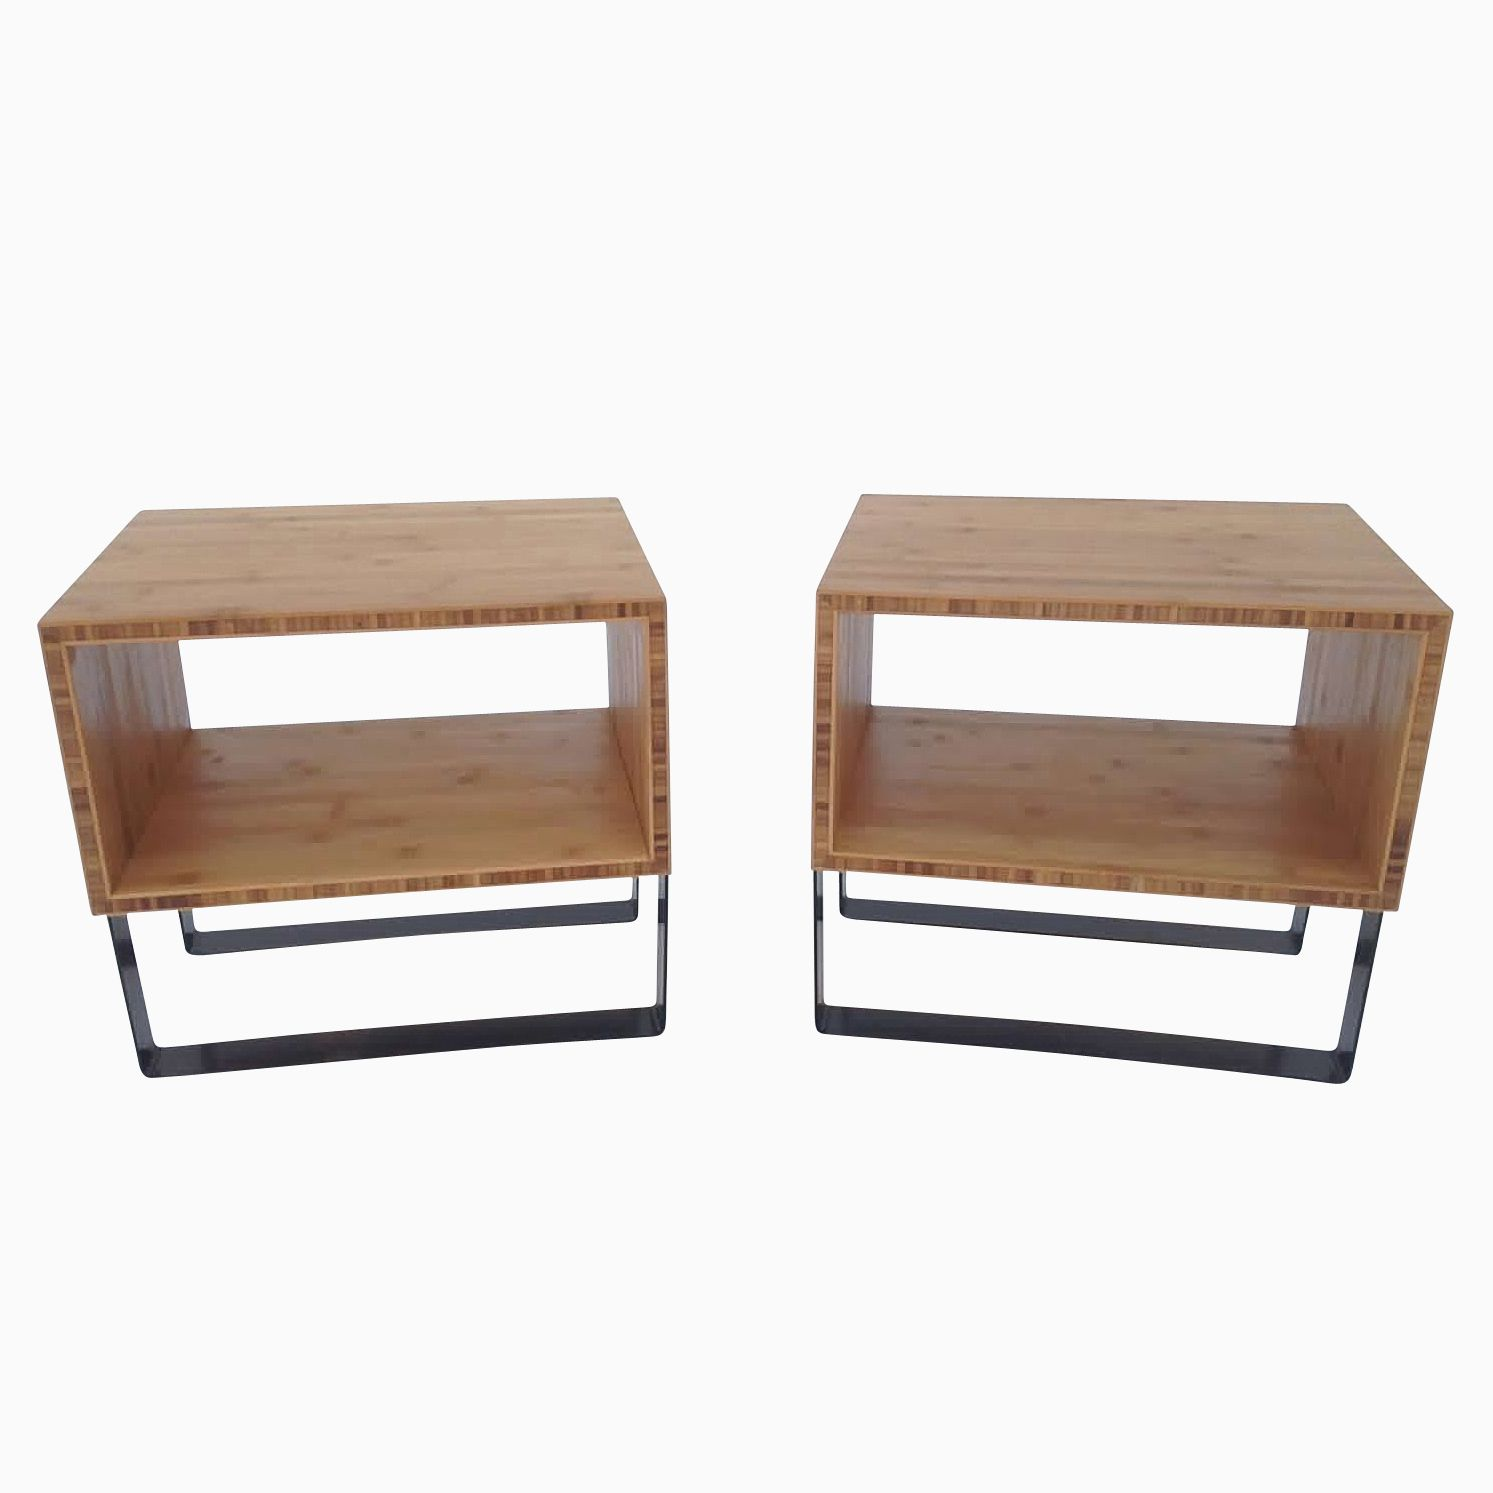 Buy a Custom Pair Open Bedside Tables Mid Century Modern